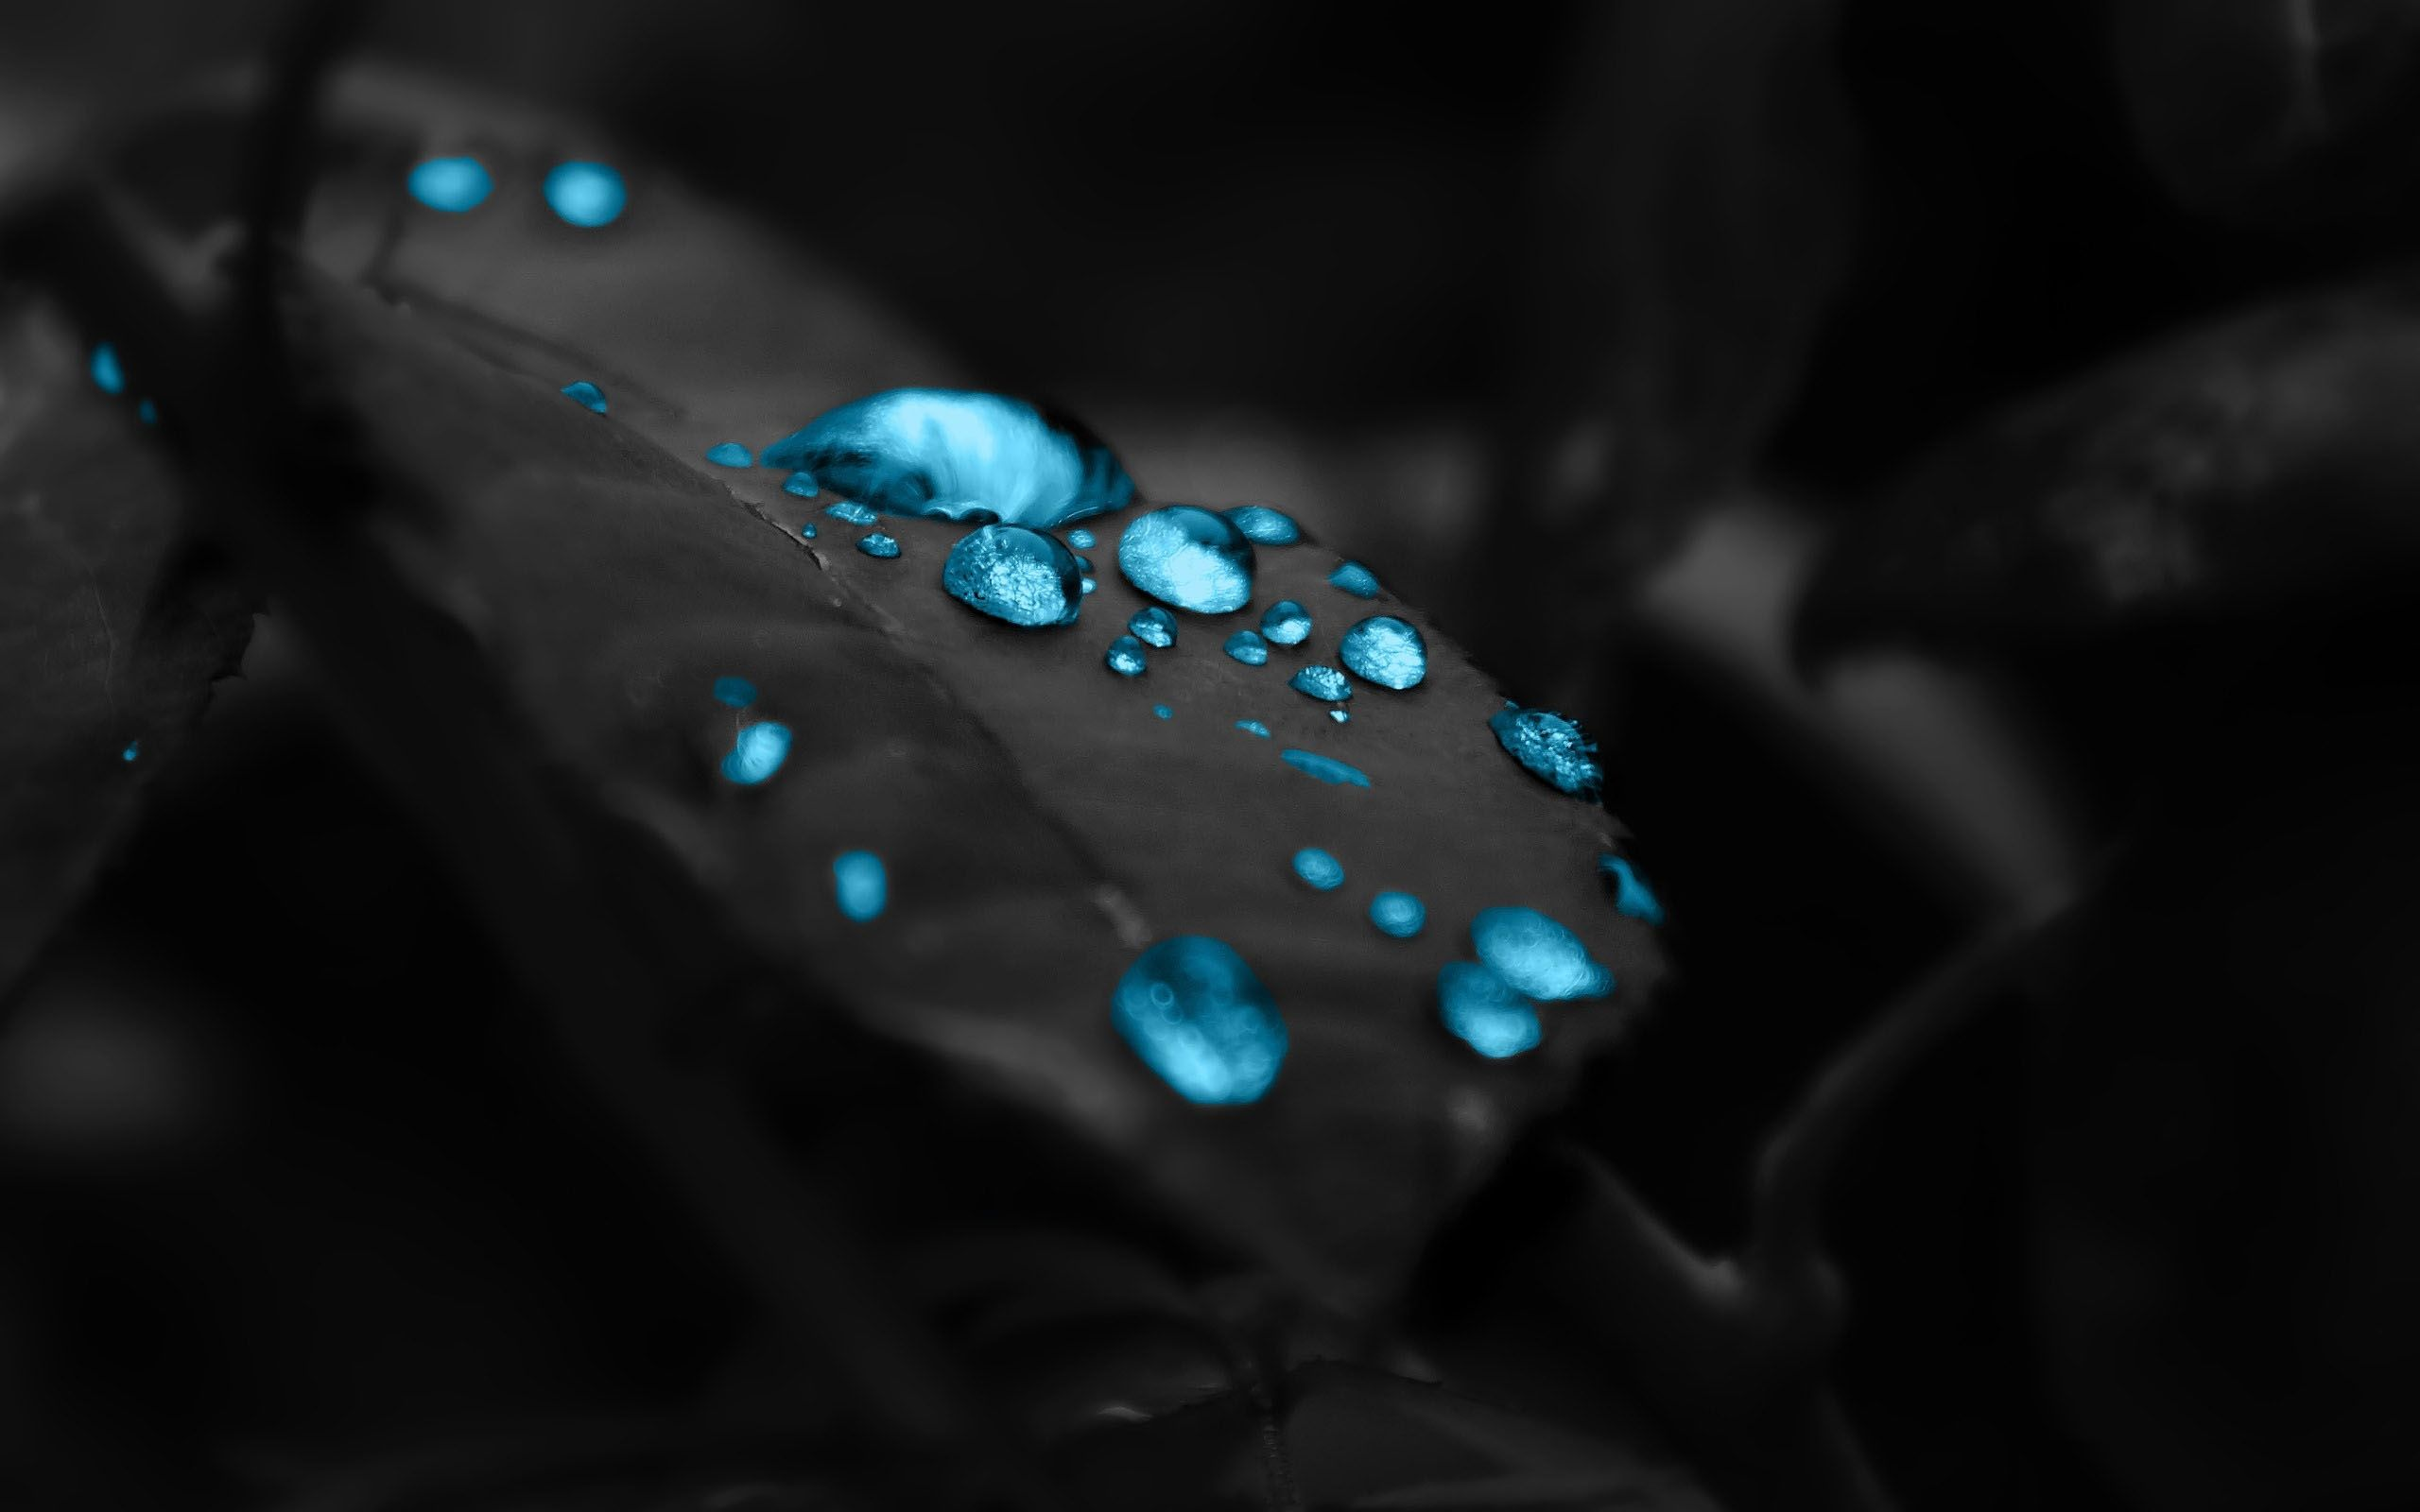 The Leaves Dew Mac Hd Wallpaper Dazzling Wallpaper Blue Water Wallpaper Dark Blue Wallpaper Blue Wallpapers